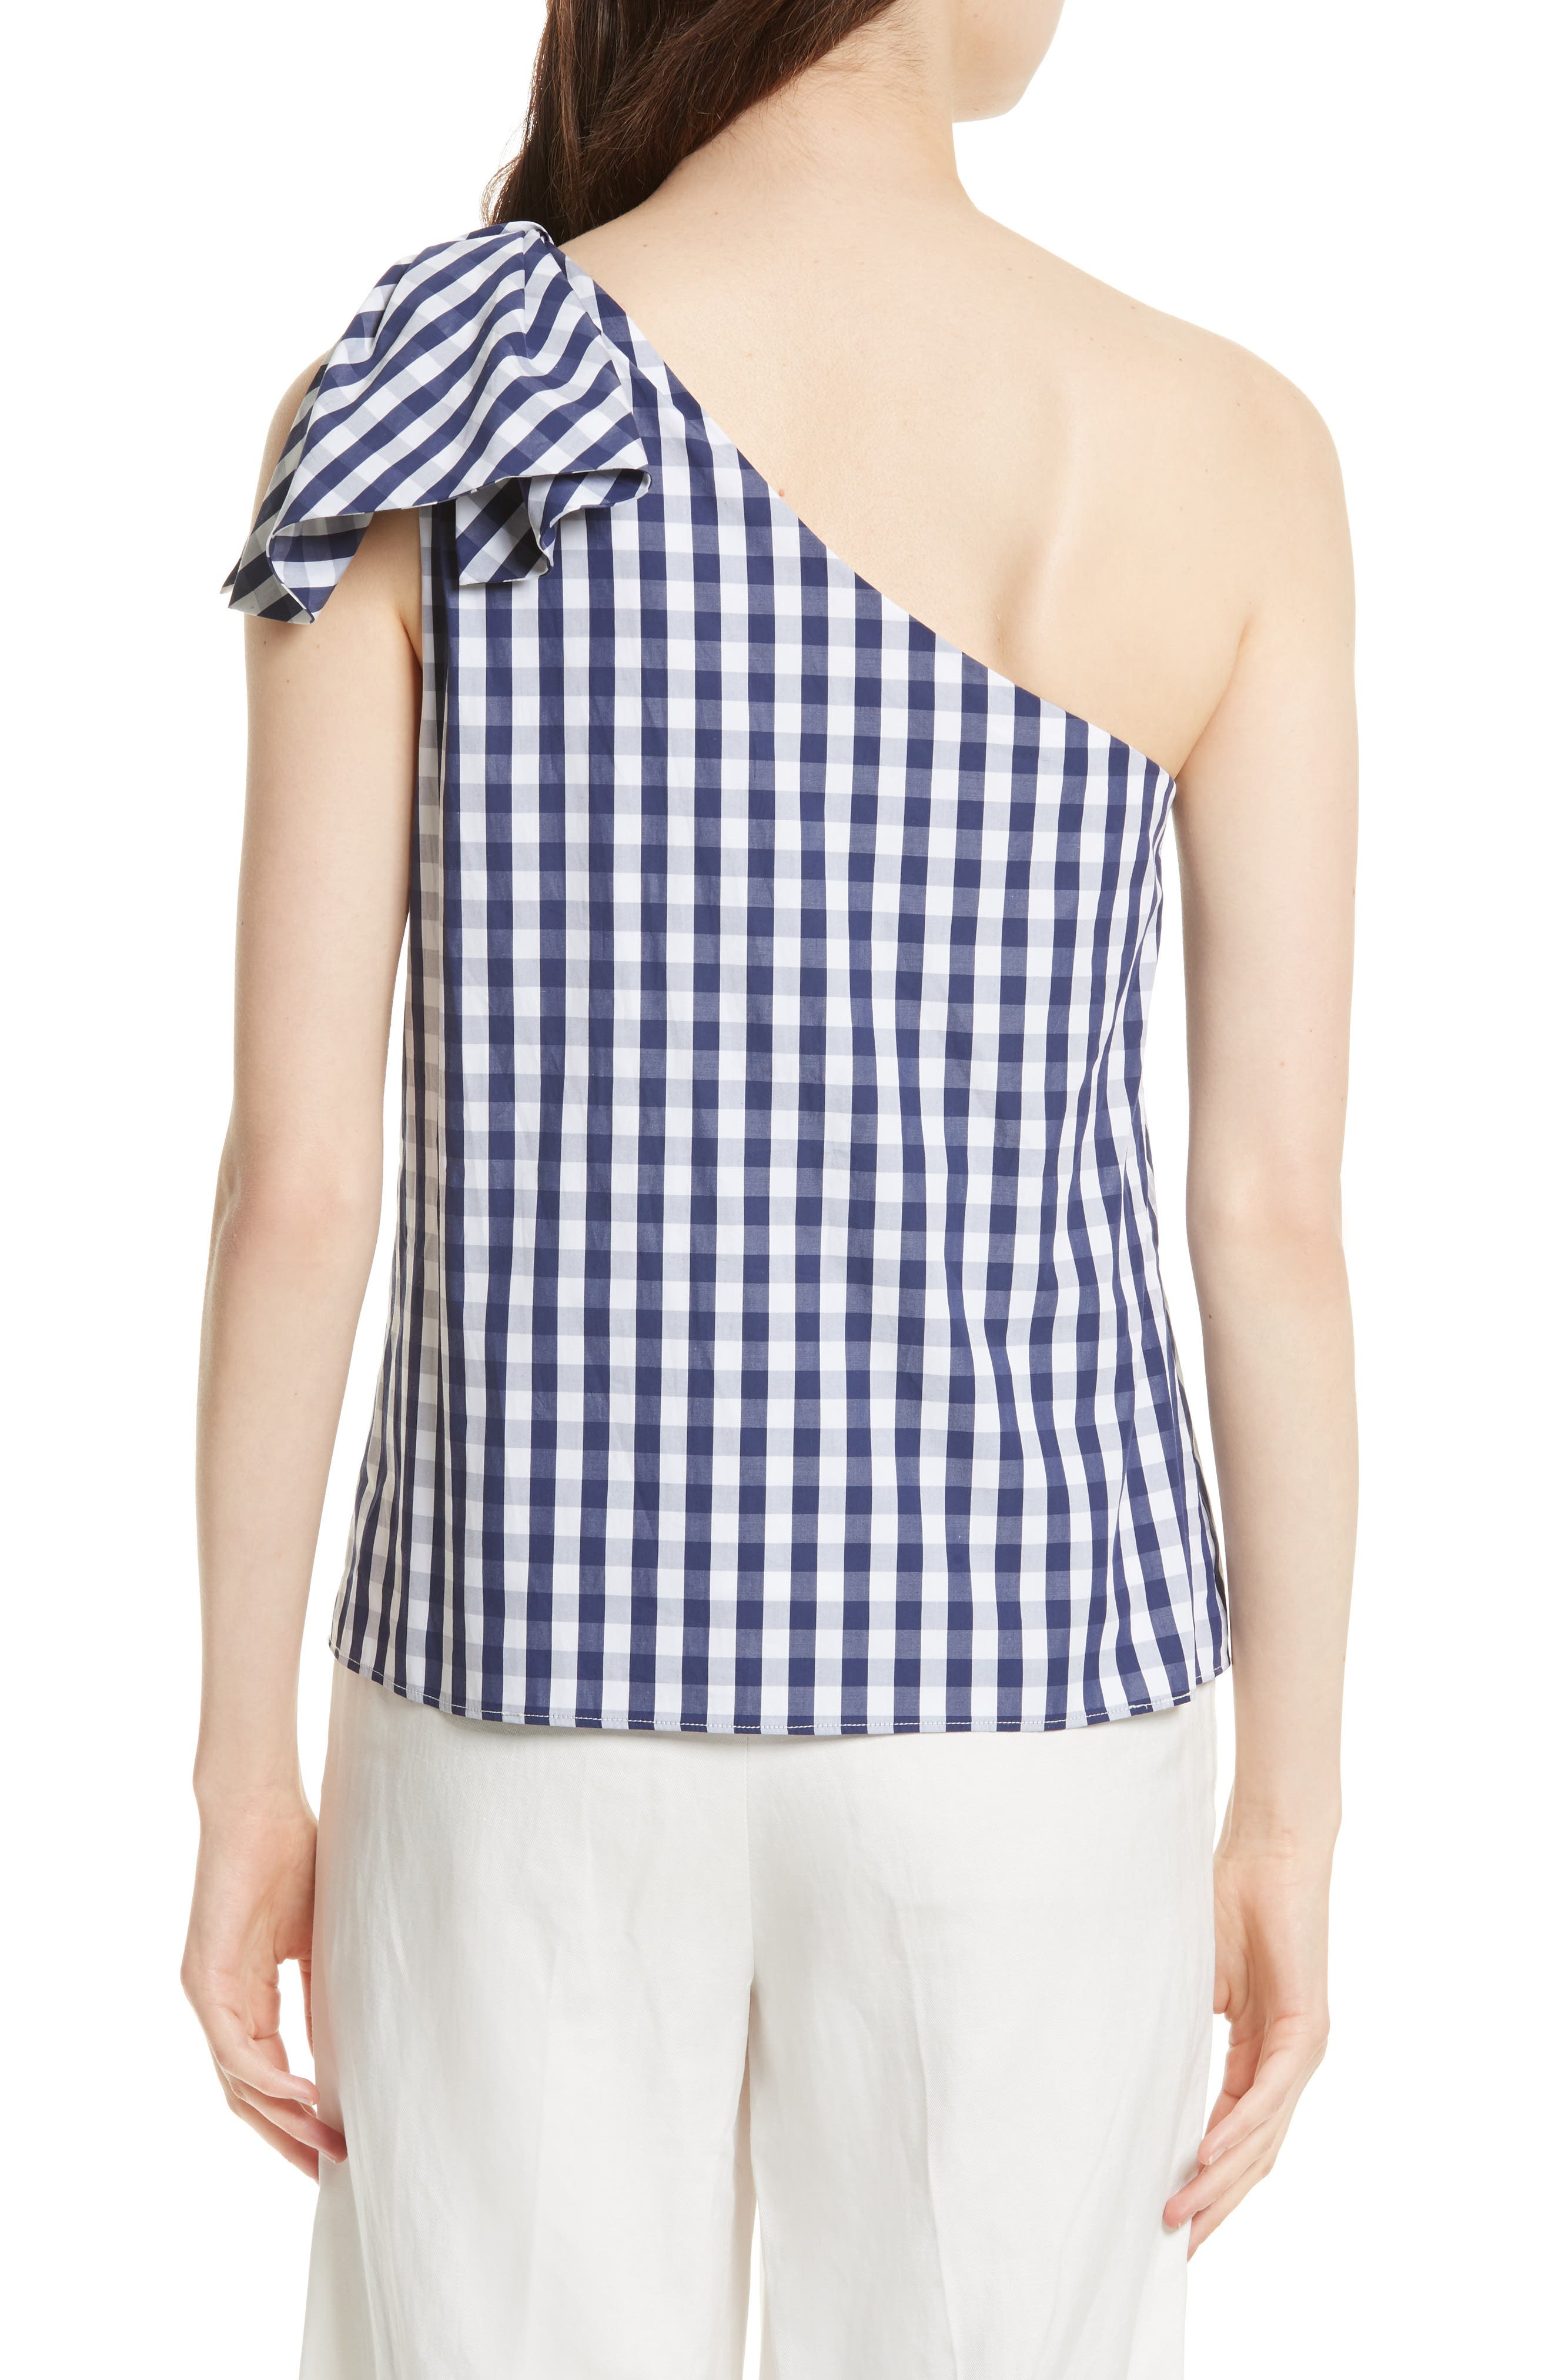 MILLY, Cindy One Shoulder Gingham Top, Alternate thumbnail 2, color, 410